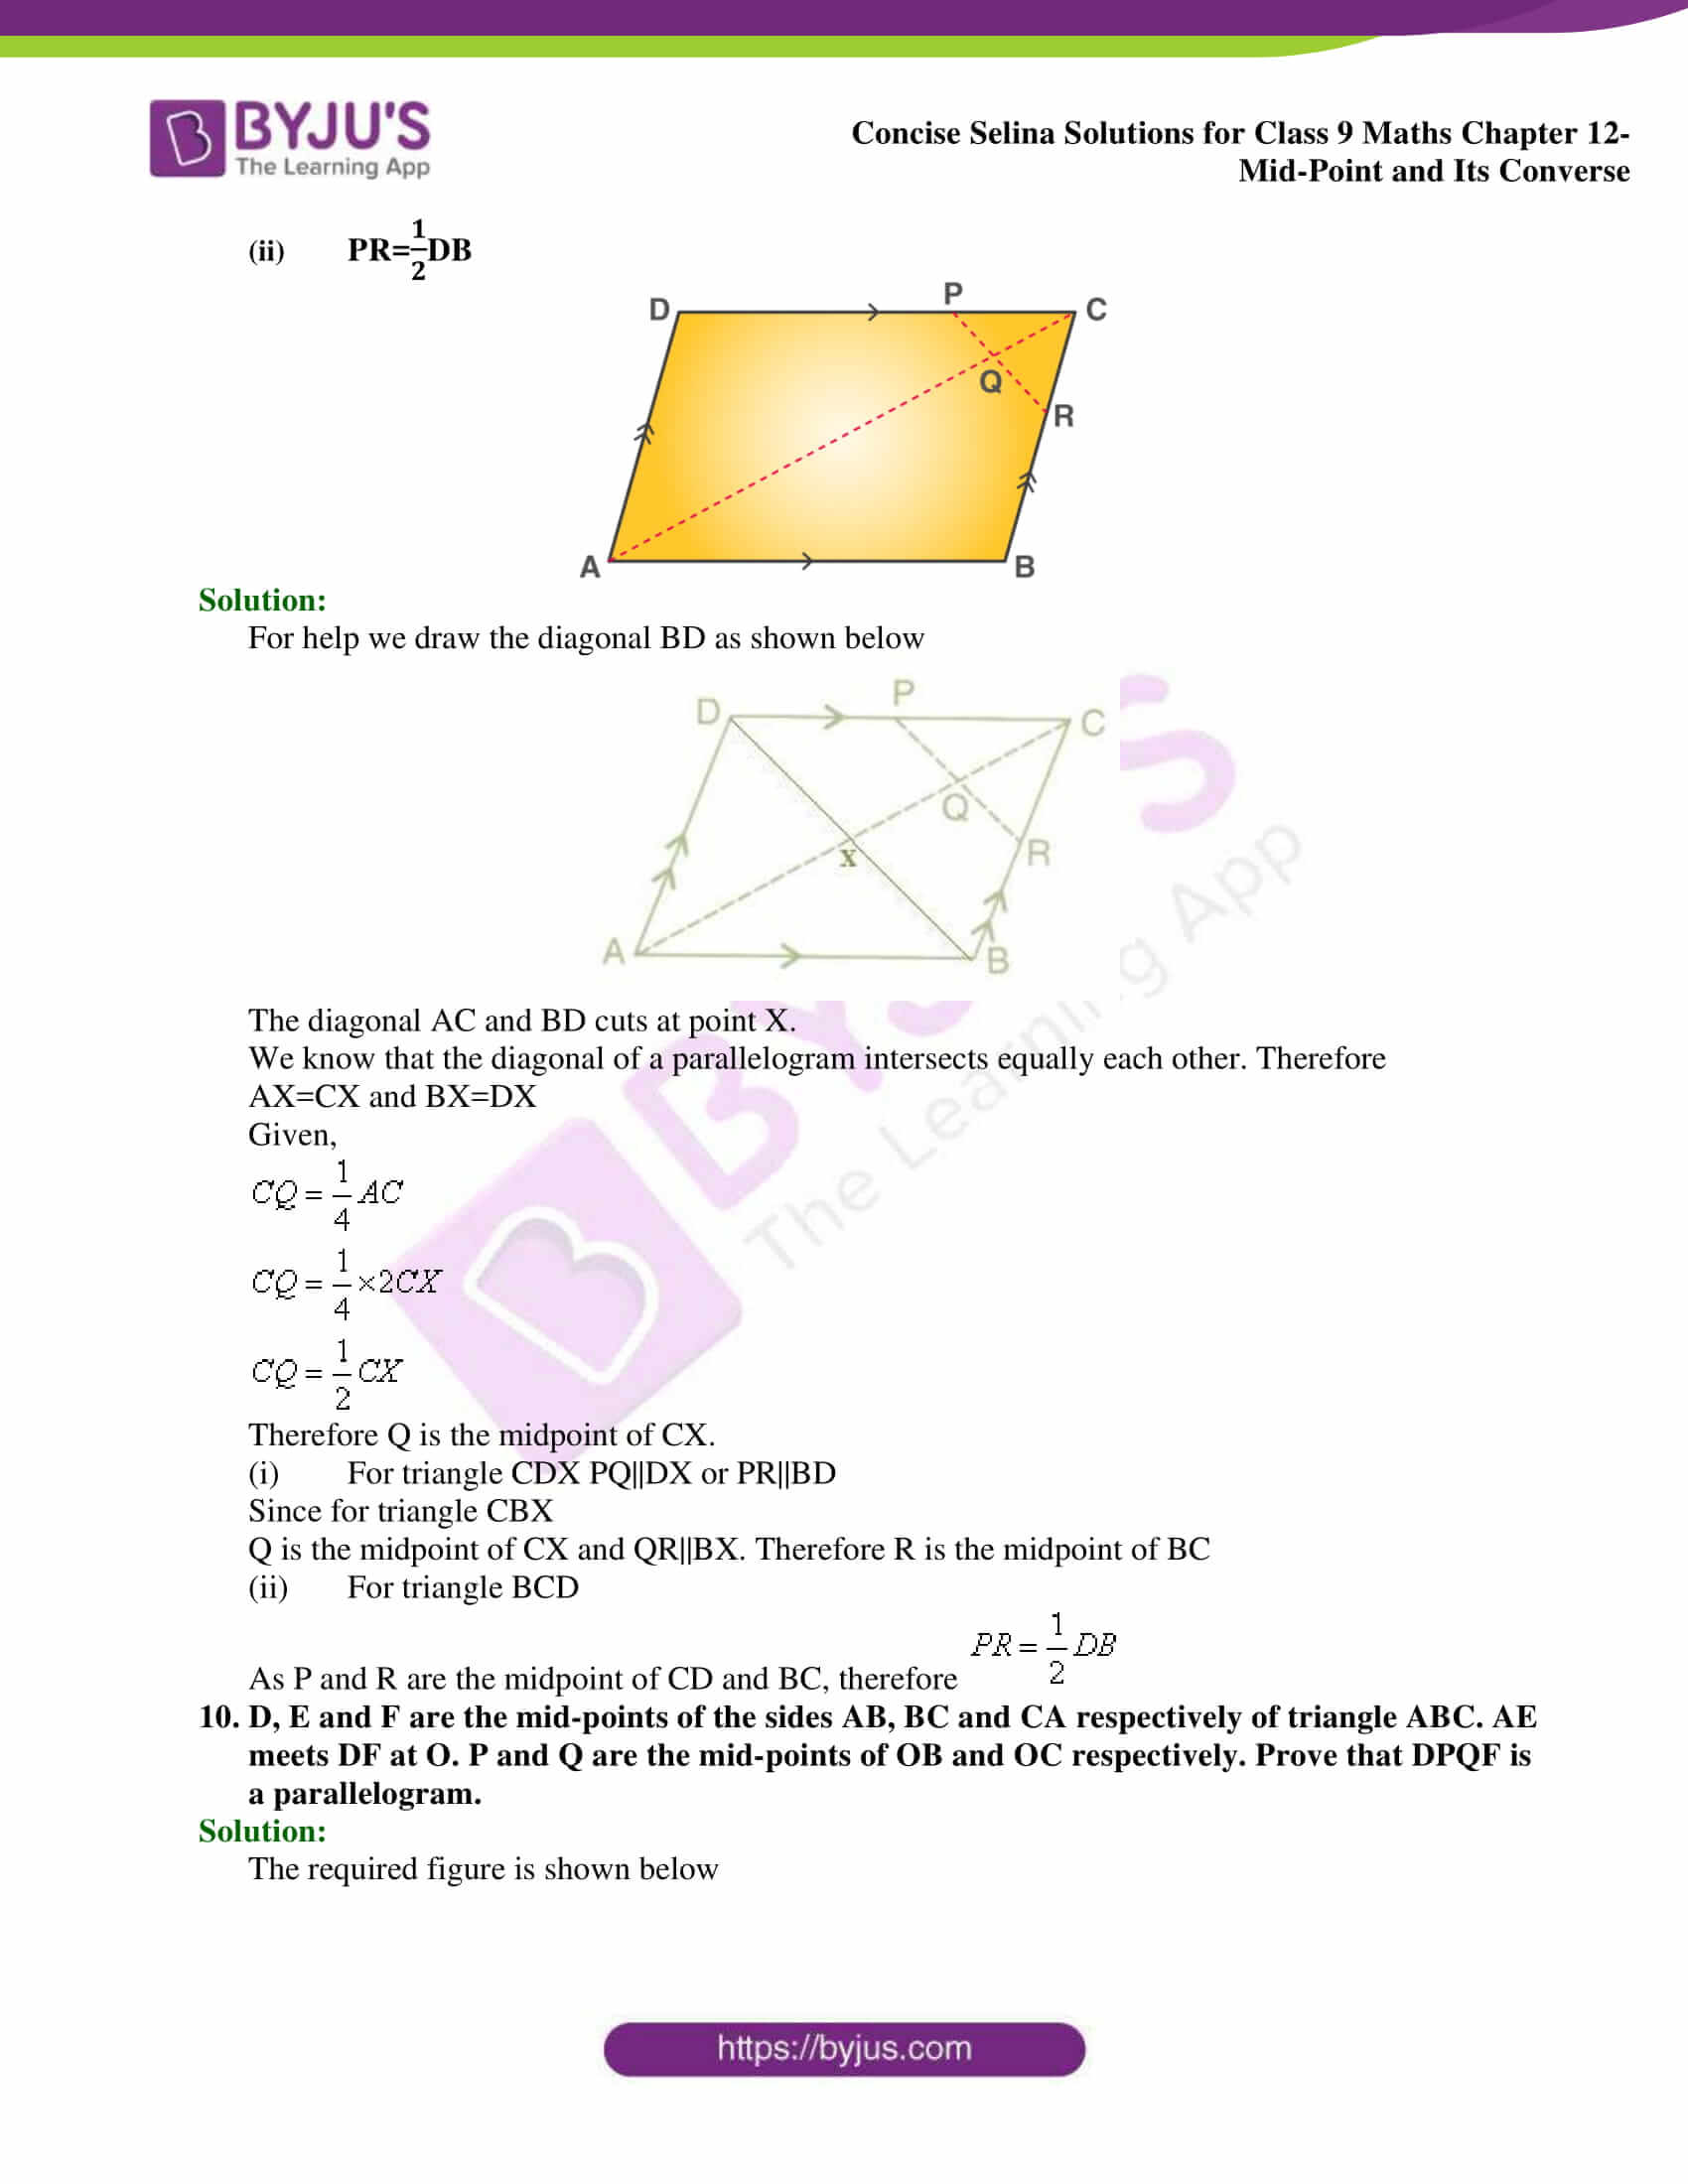 selina Solutions for Class 9 Maths Chapter 12 part 06